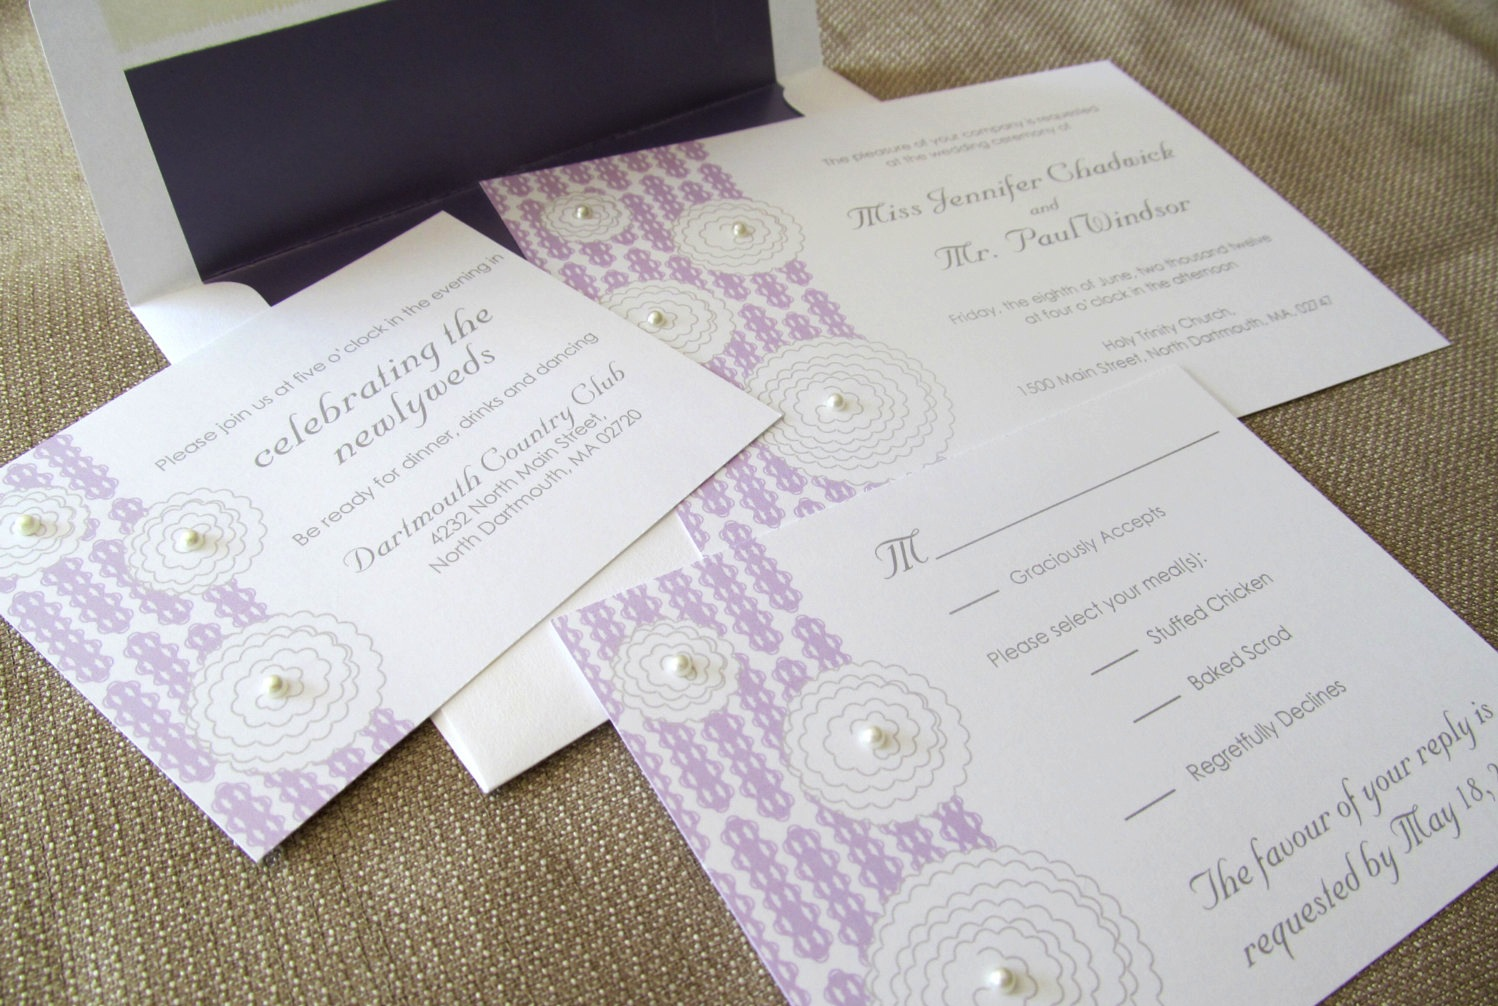 Pearl-wedding-accessories-handmade-etsy-wedding-finds-lilac-white-invites.original